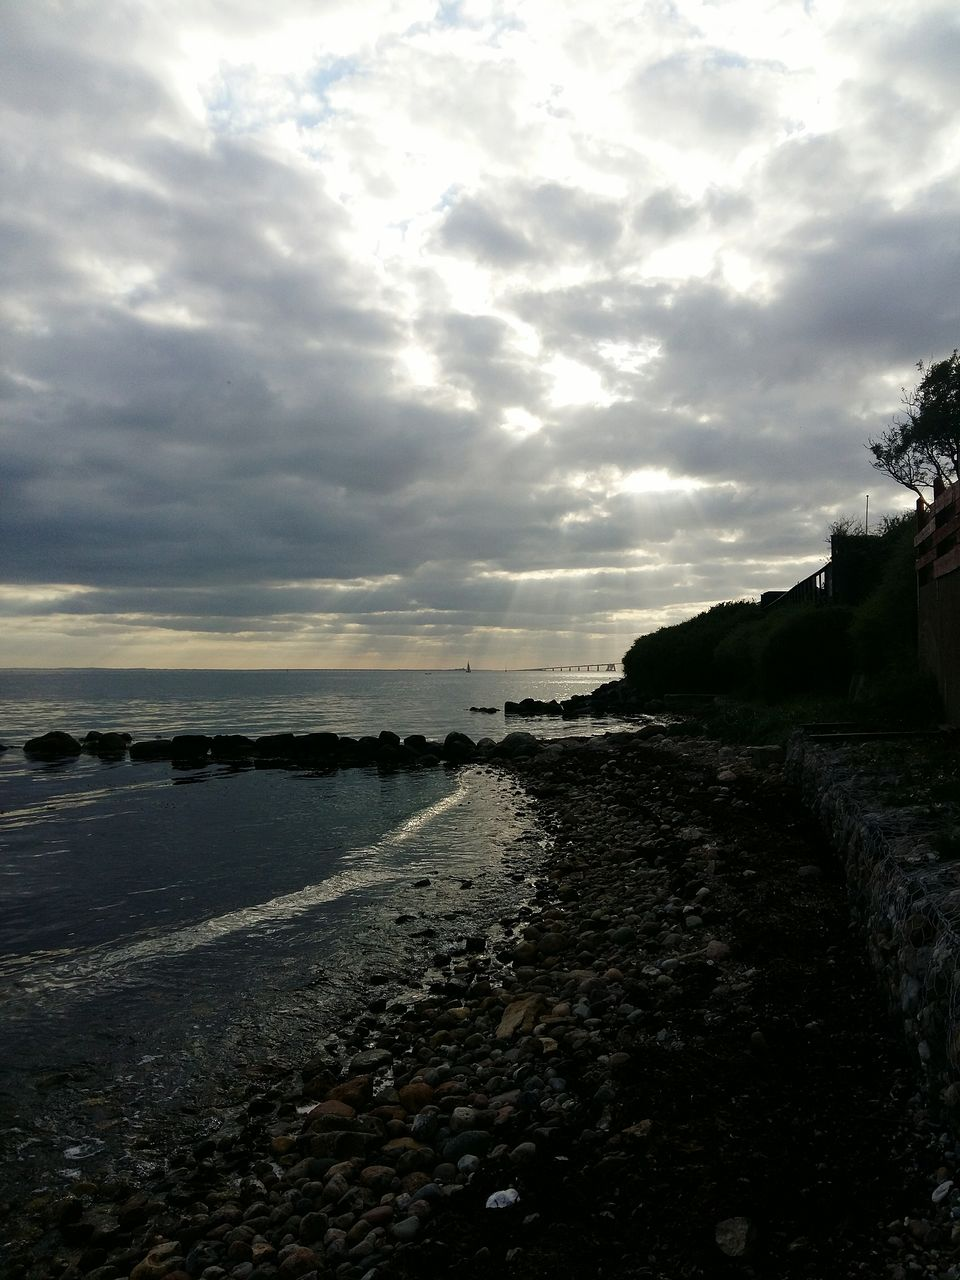 sky, water, cloud - sky, sea, nature, beach, no people, beauty in nature, outdoors, scenics, day